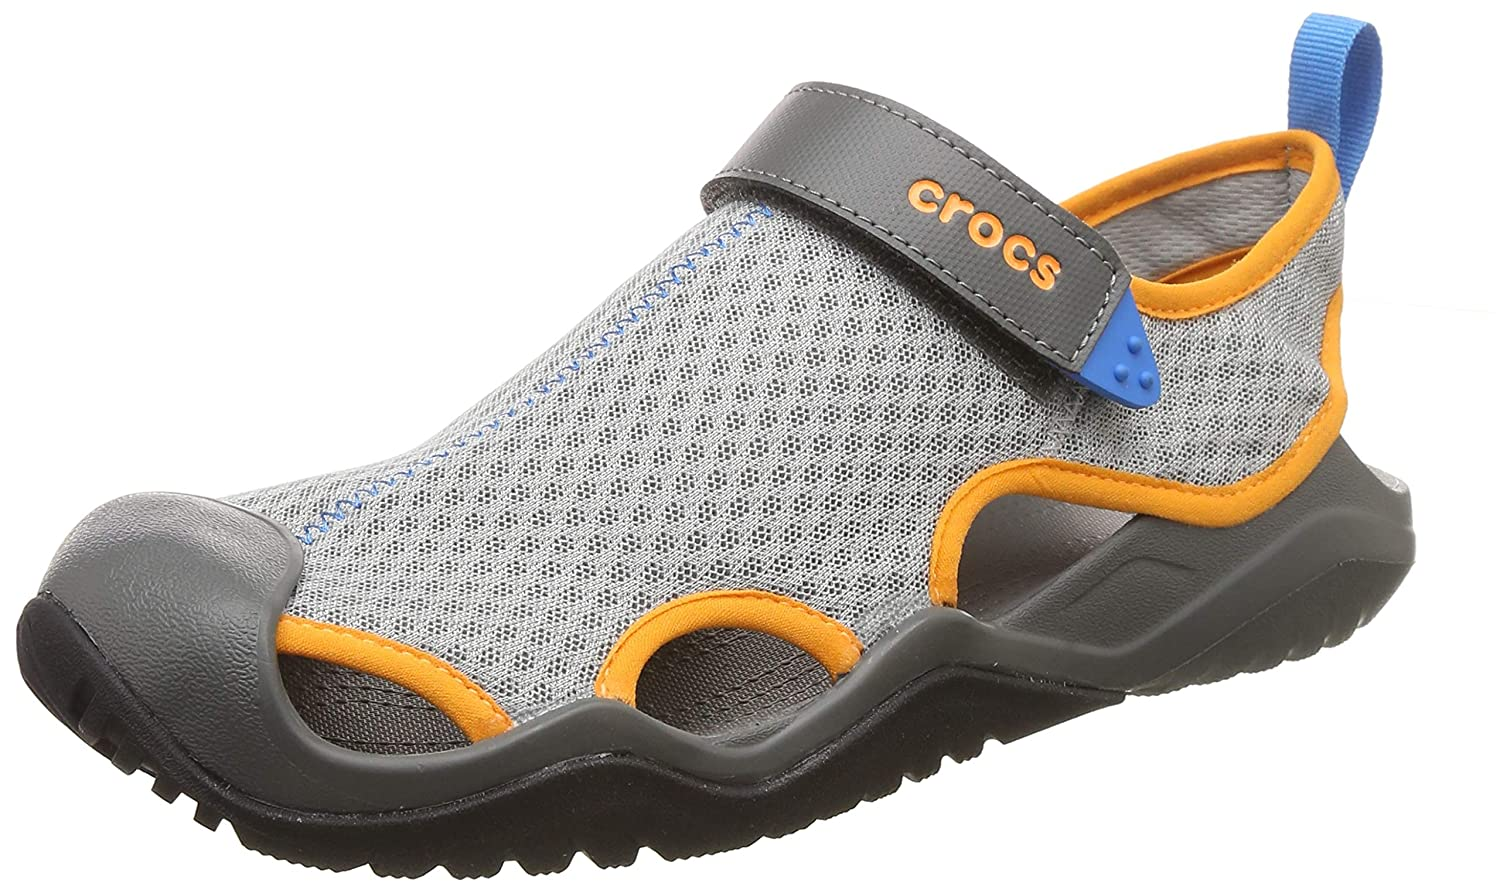 Men's Swiftwater™ Mesh Deck Sandal: : Schuhe